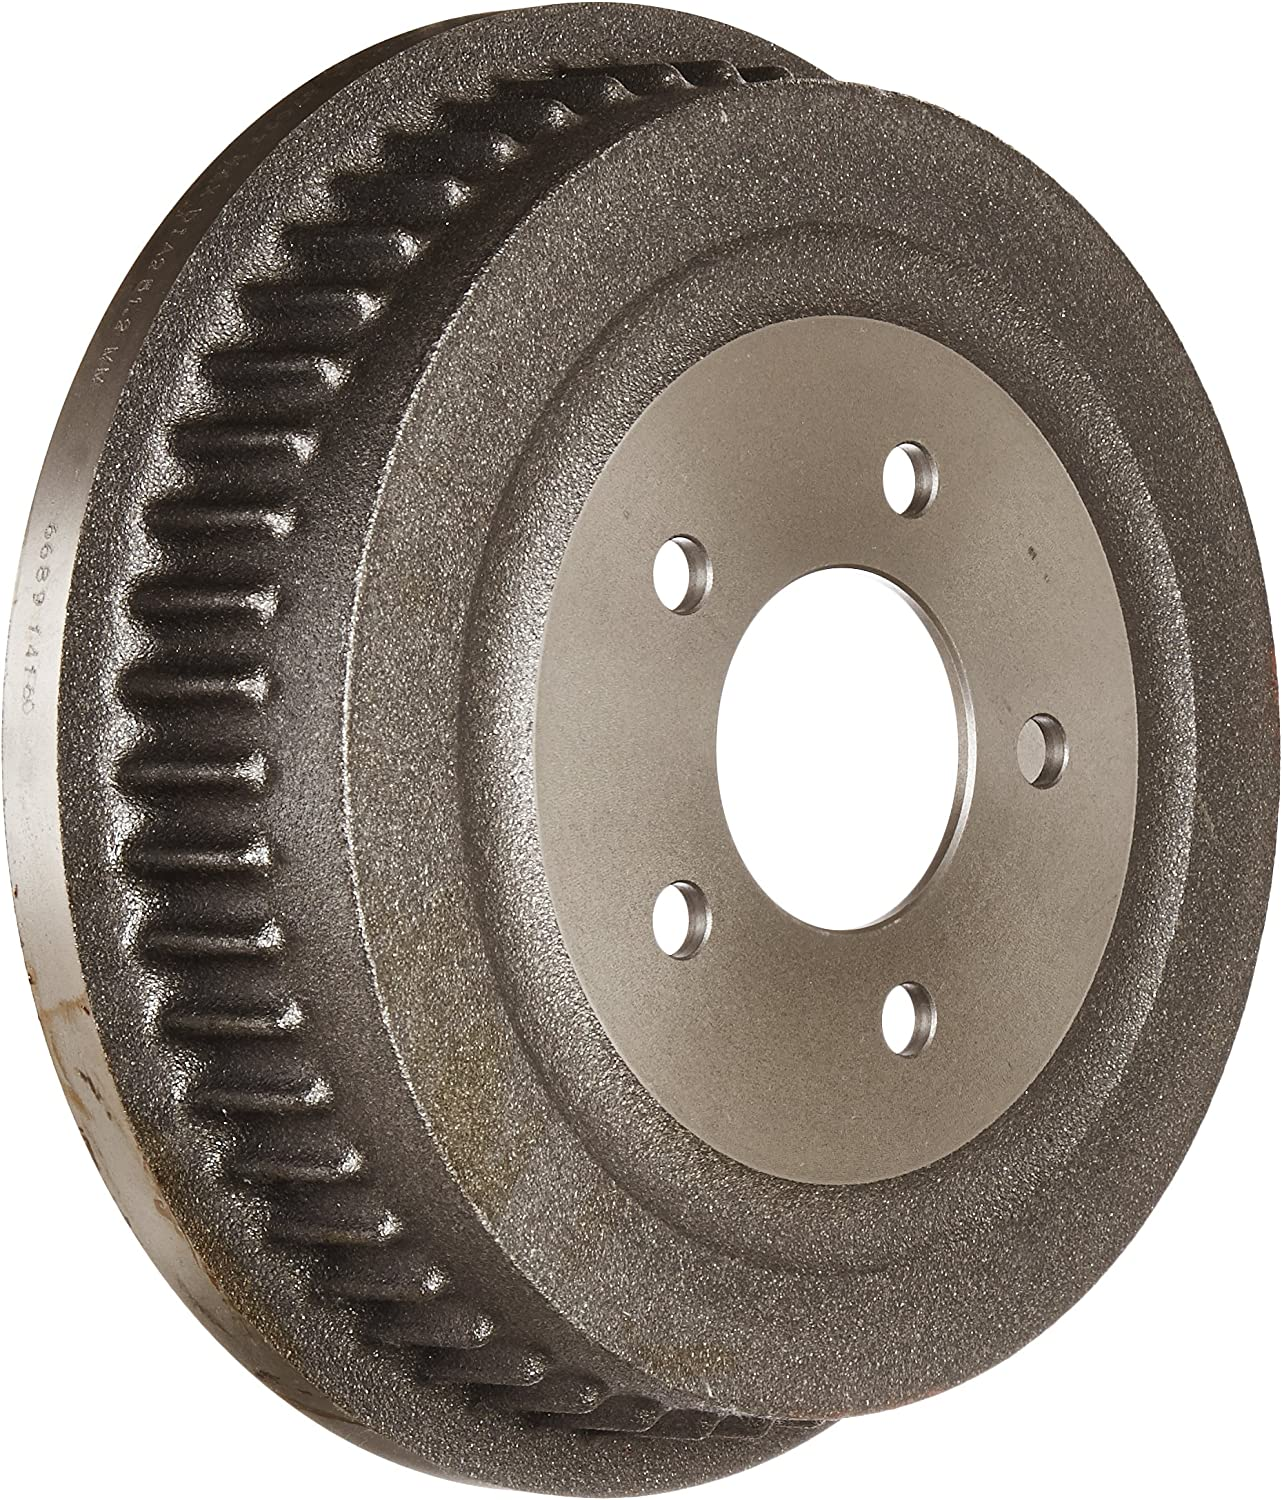 Centric New Brake Shoe Sets 2-Wheel Set Rear for Town and Country Grand Caravan